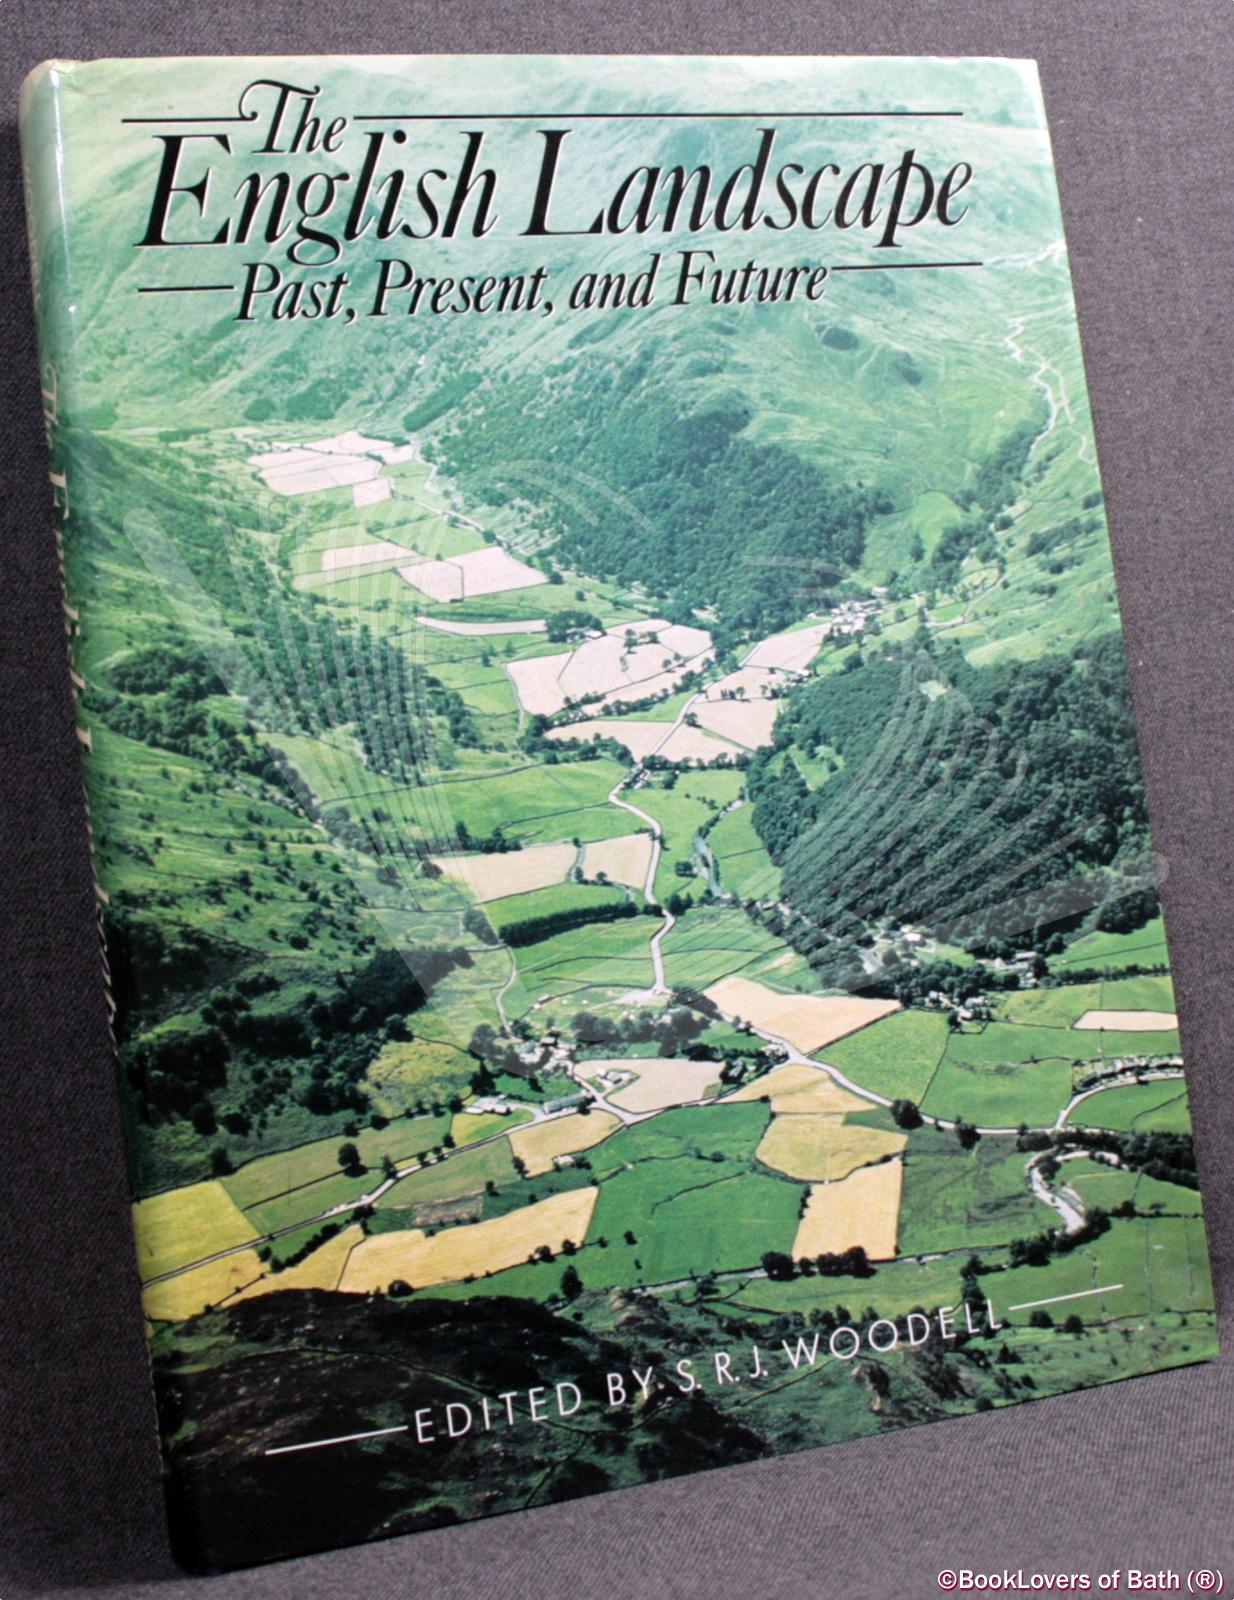 The English Landscape: Past, Present and Future - Edited By S. R. J. [Stanley Reginald John] Woodell